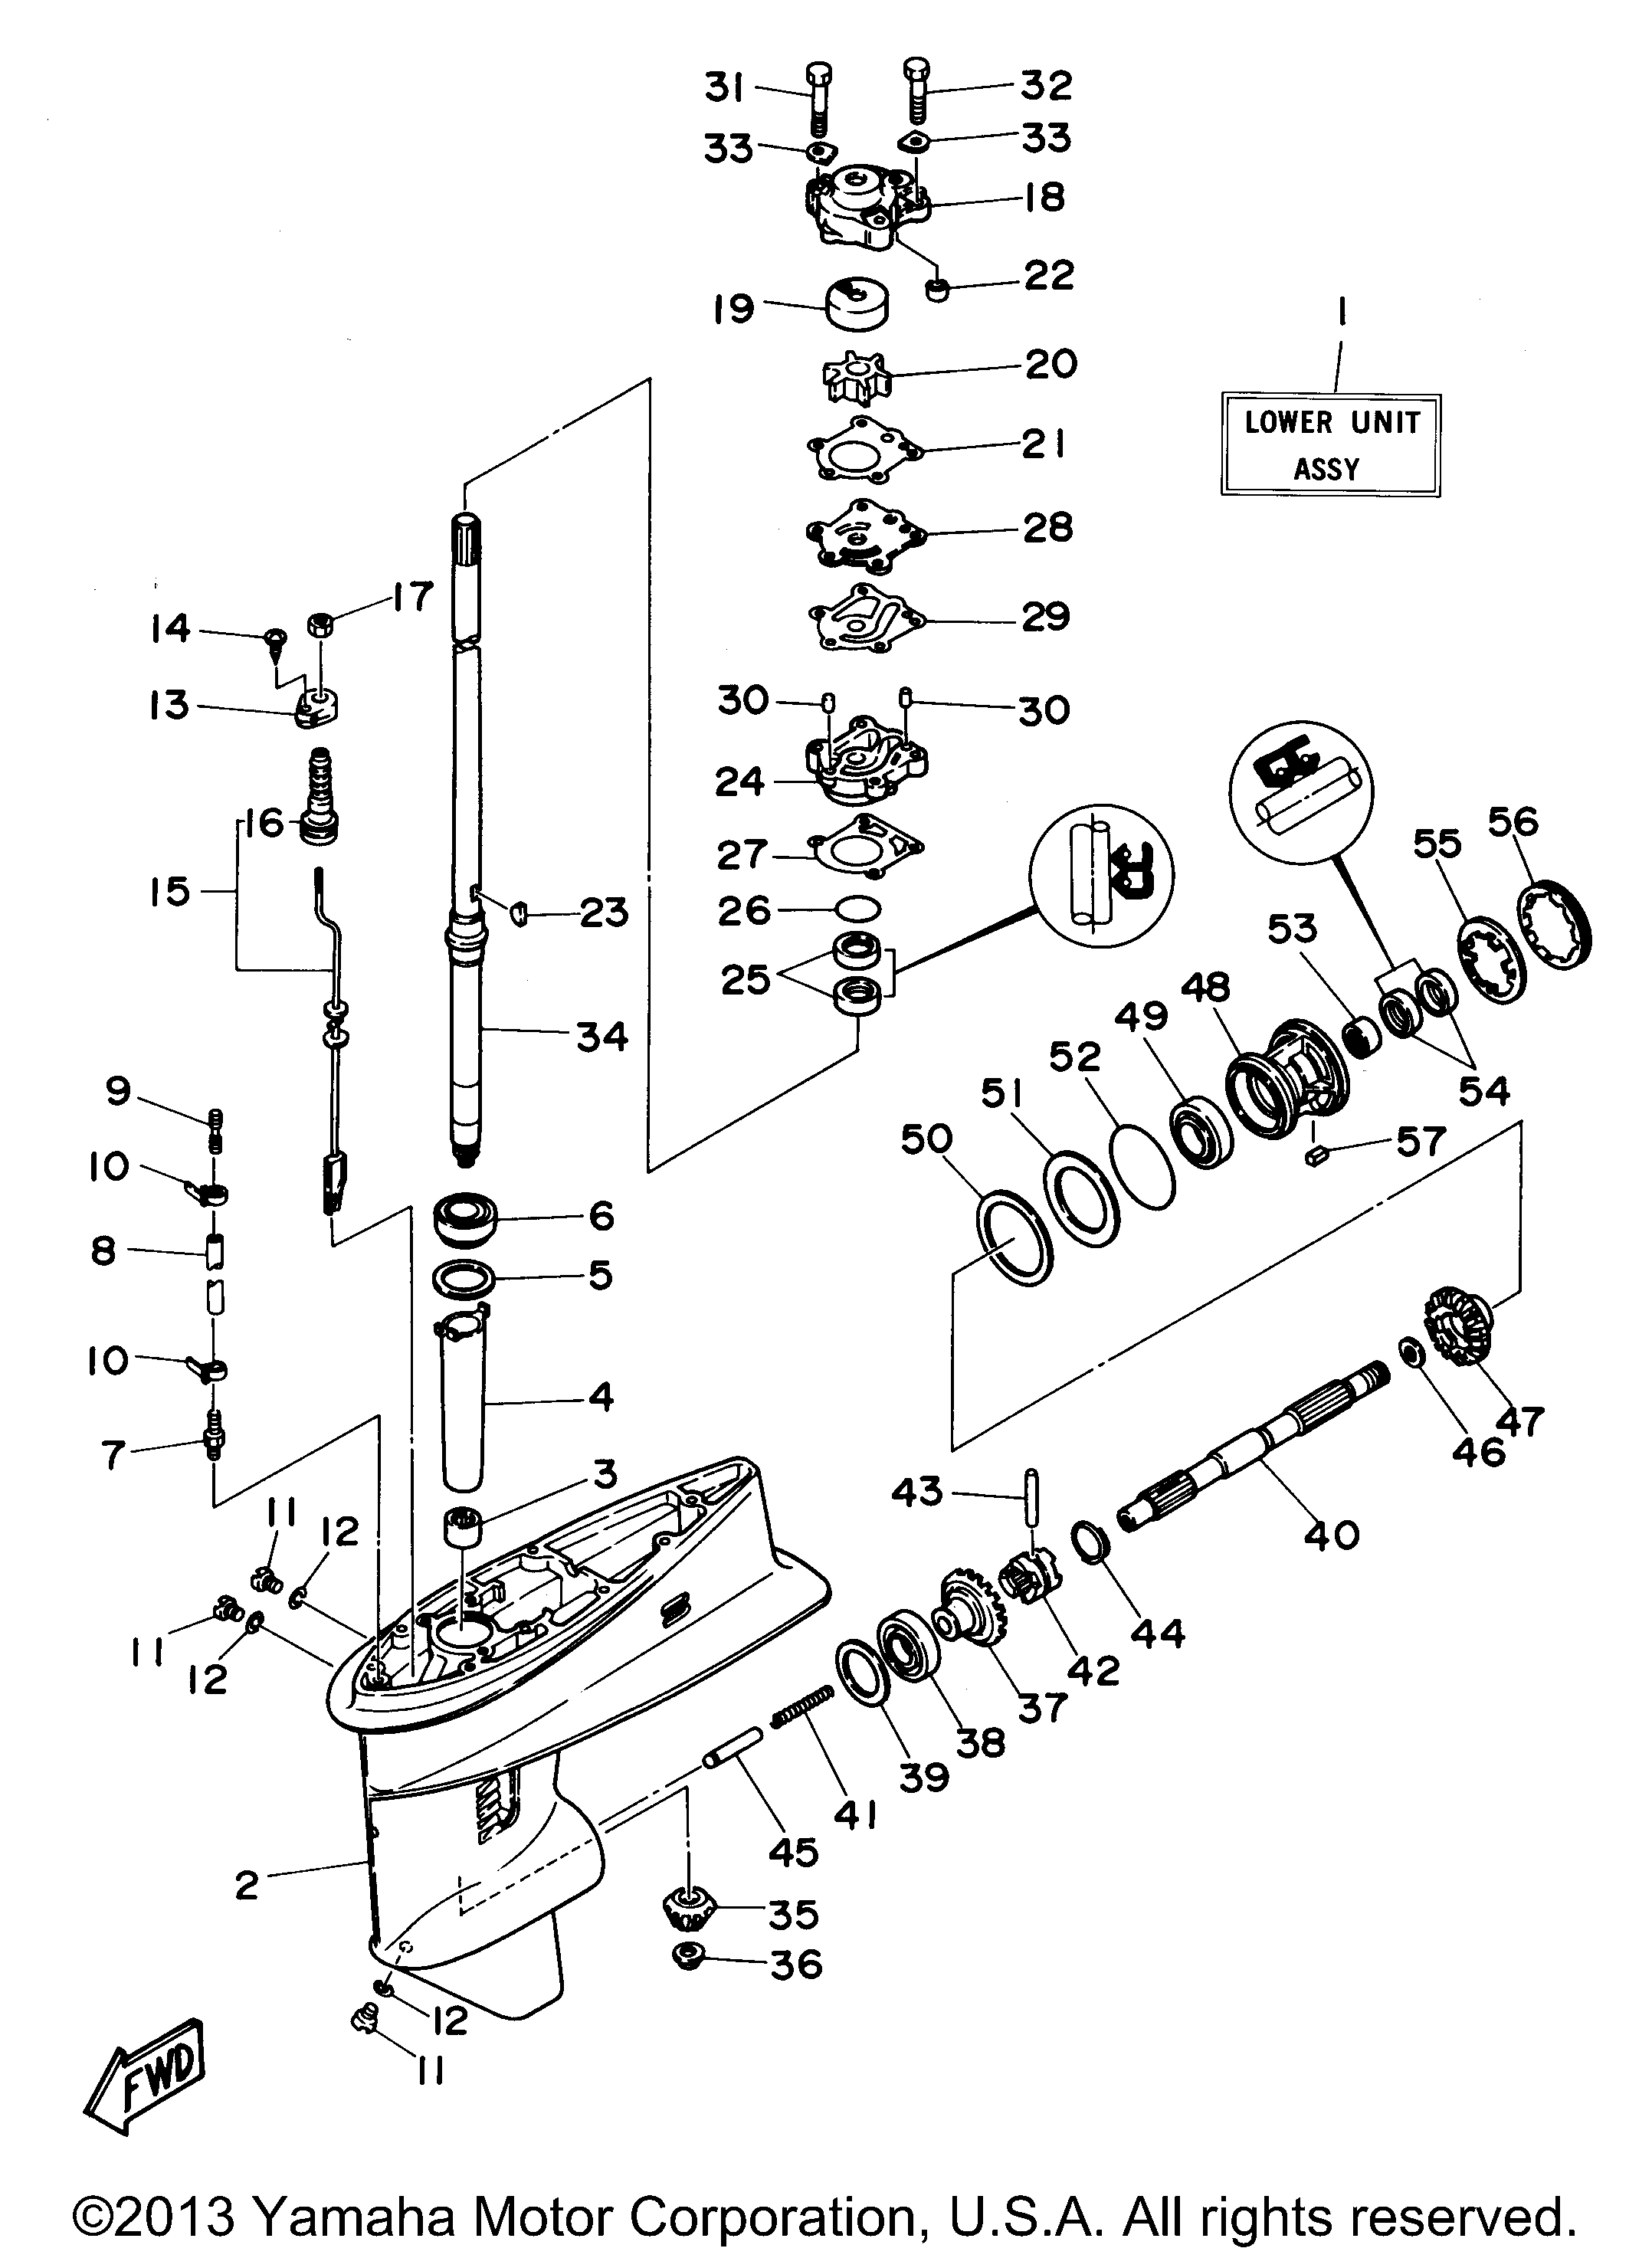 5 Hp Gamefisher Outboard Motor | Wiring Diagram Database